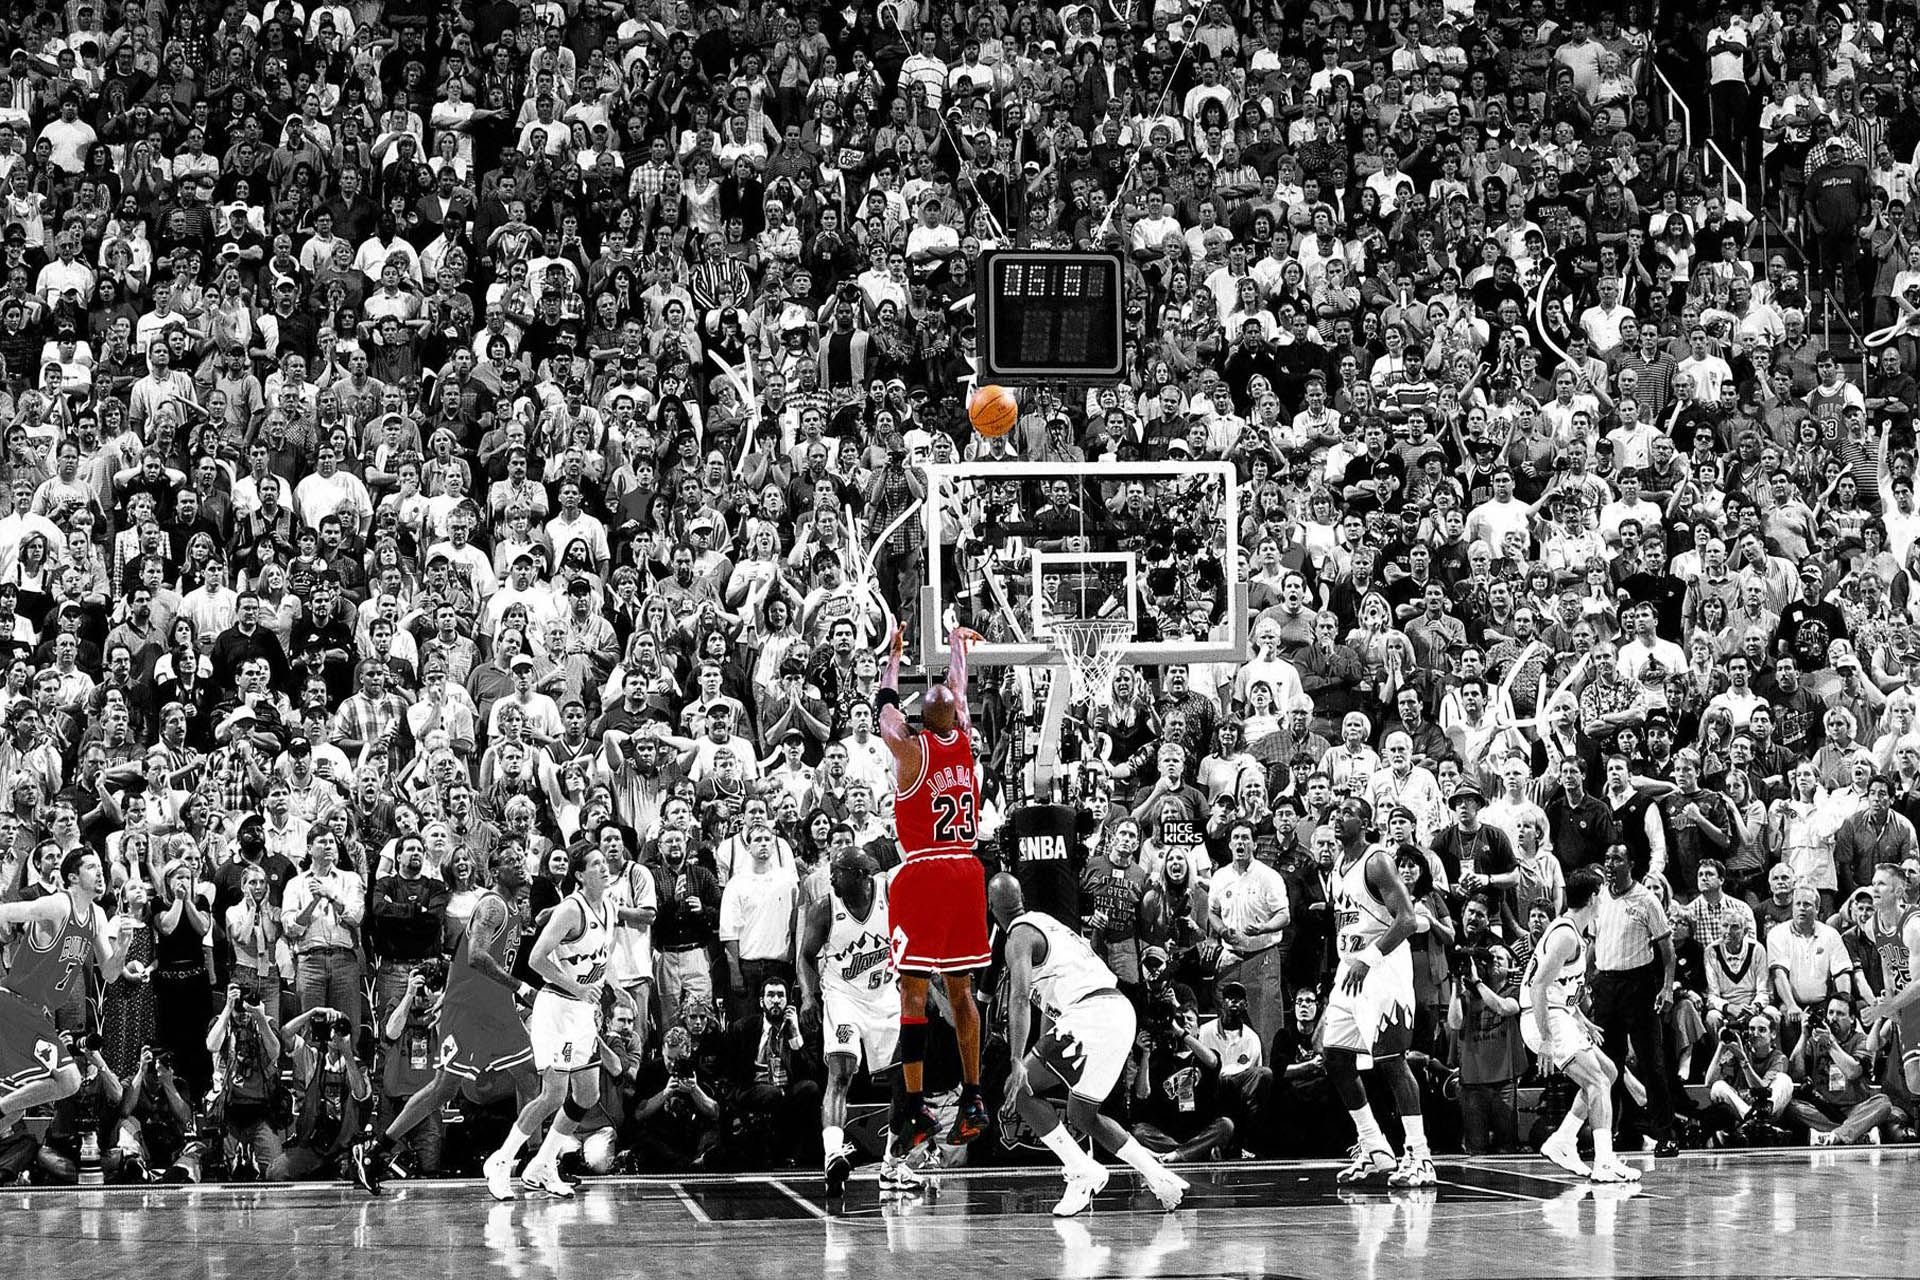 michaeljordan #mj #23 | Sports | Pinterest | 1920er